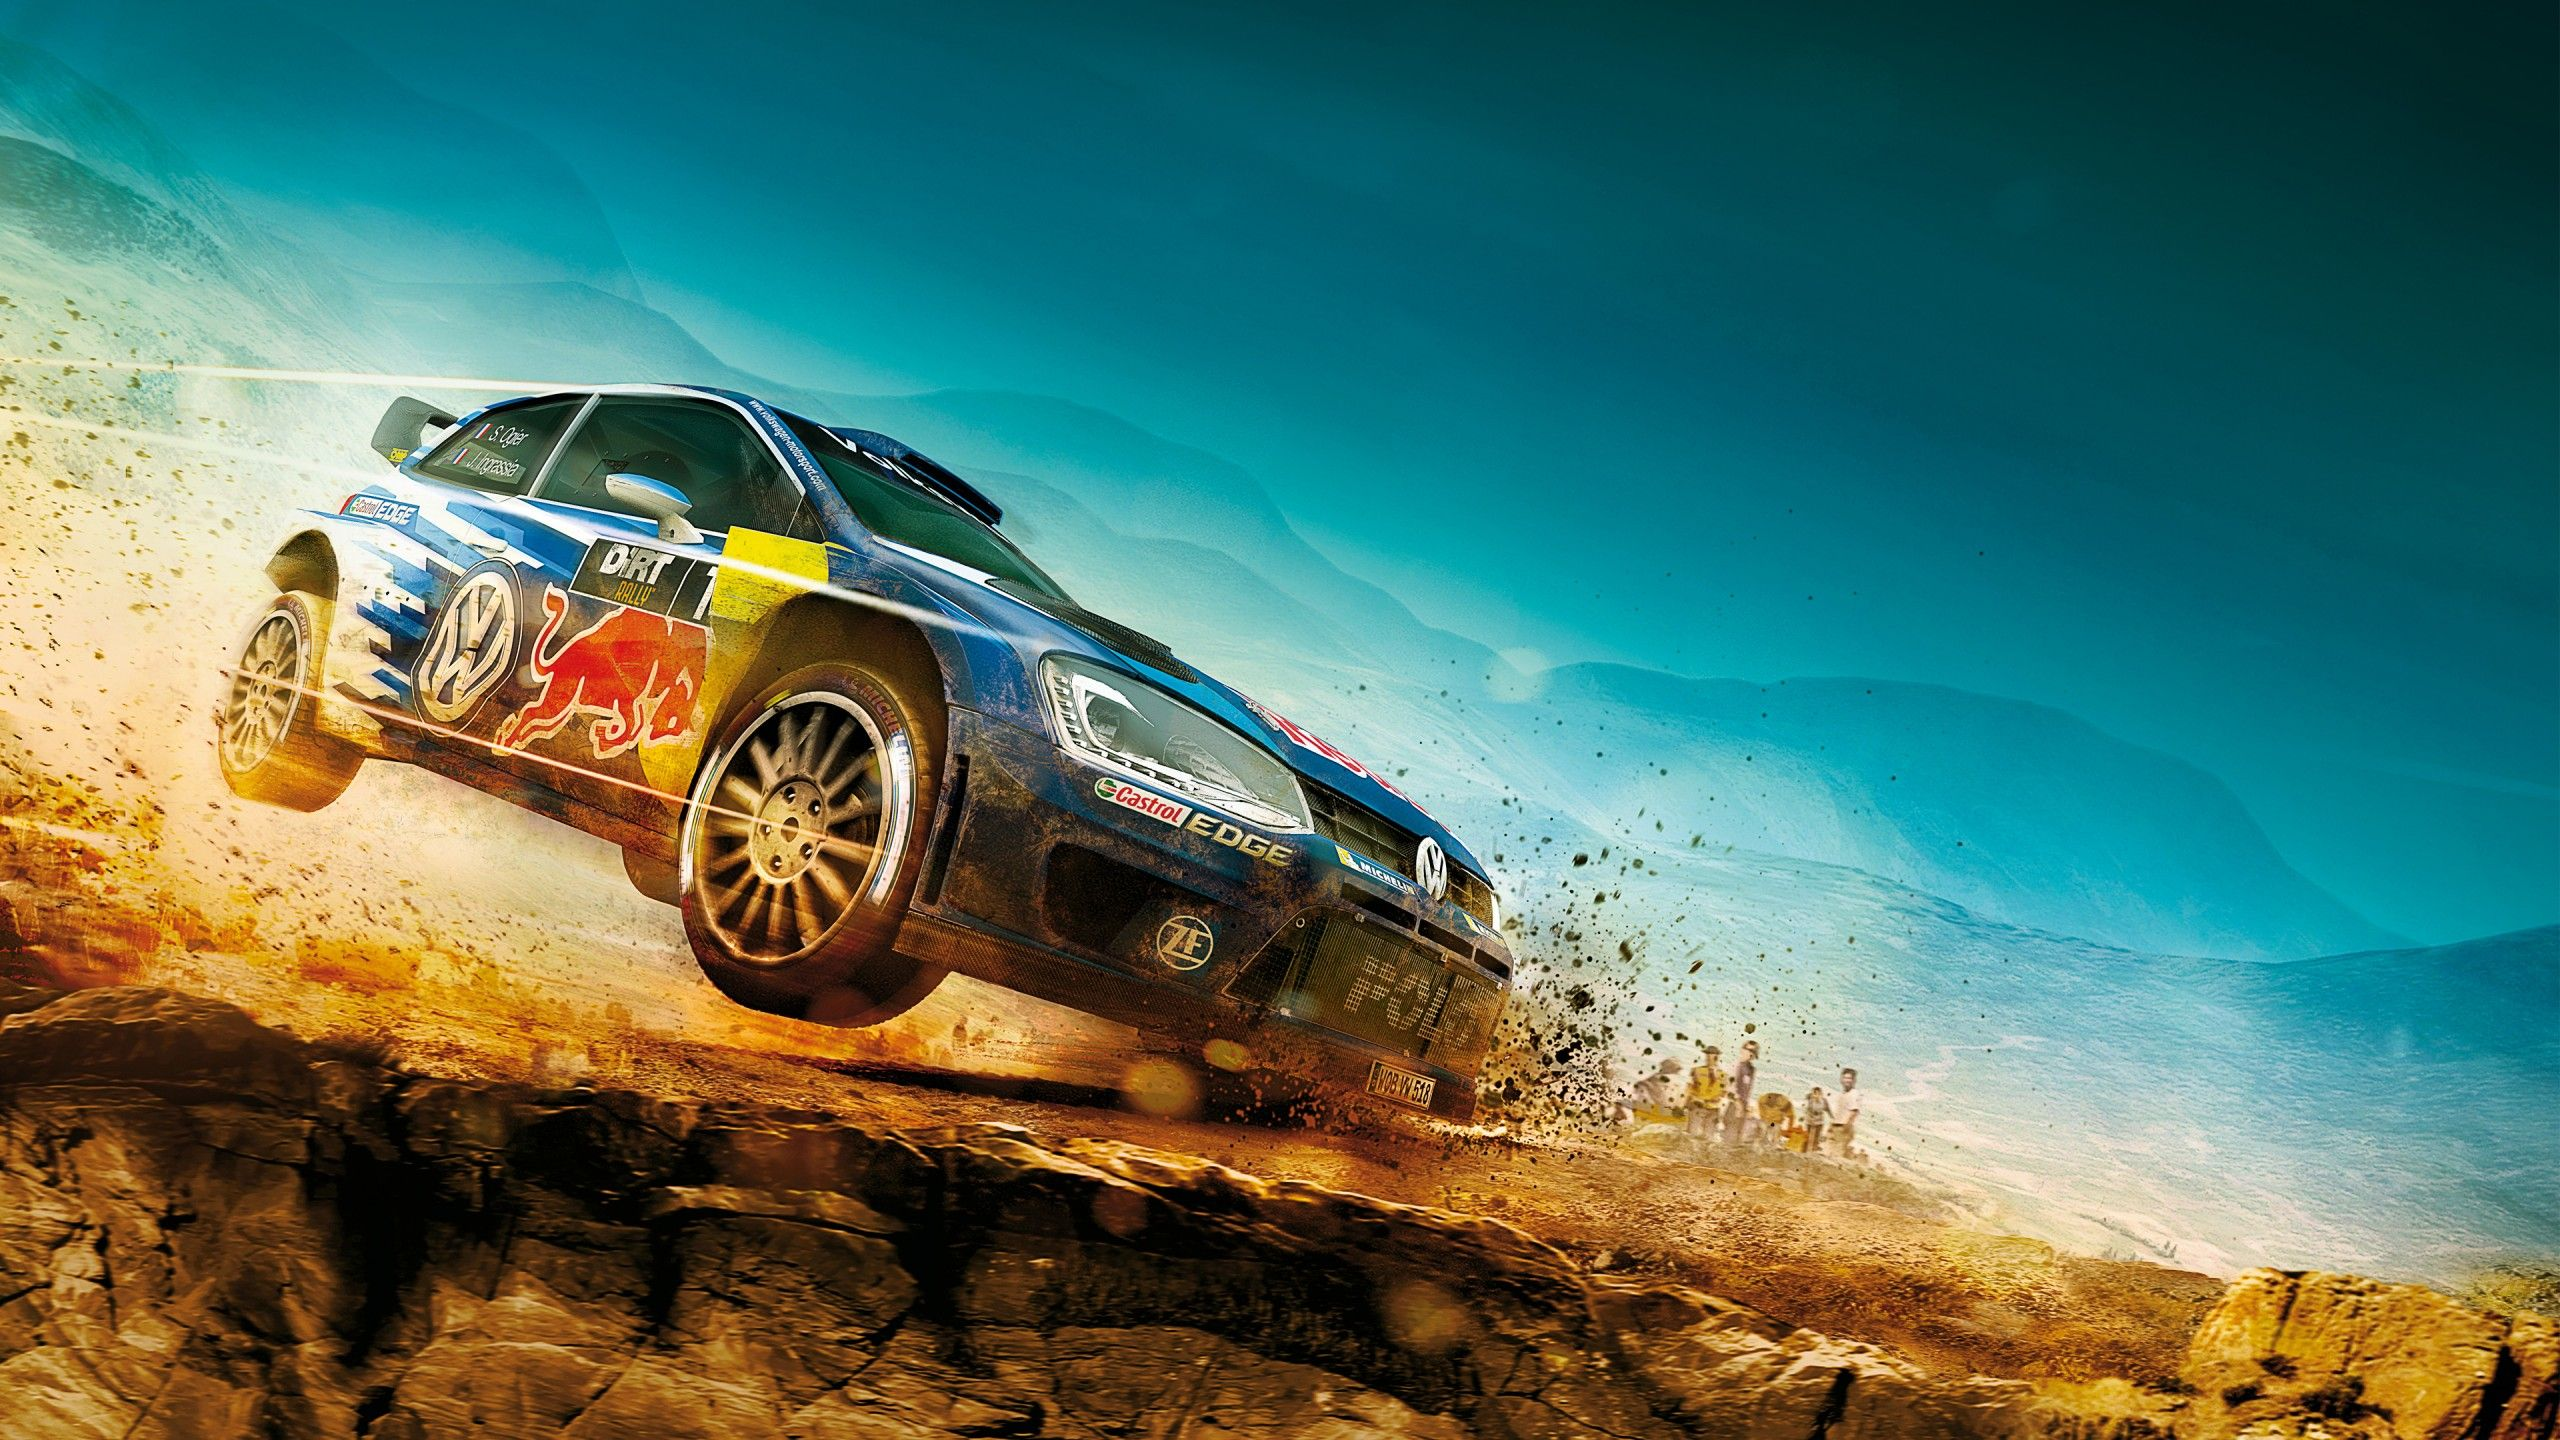 43 Best Free Rally Car Hd Wallpapers Wallpaperaccess